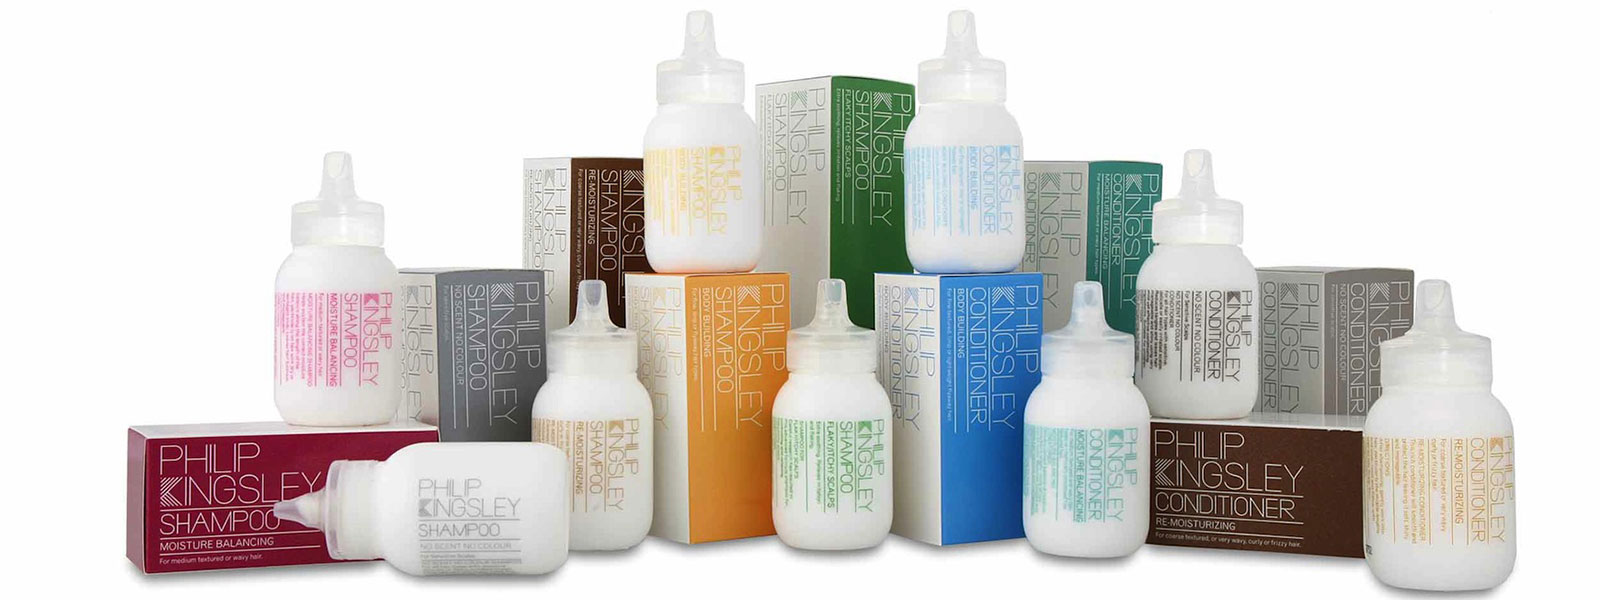 Phillip Kingsley products available at Total Look Hairdressers in Monmouth